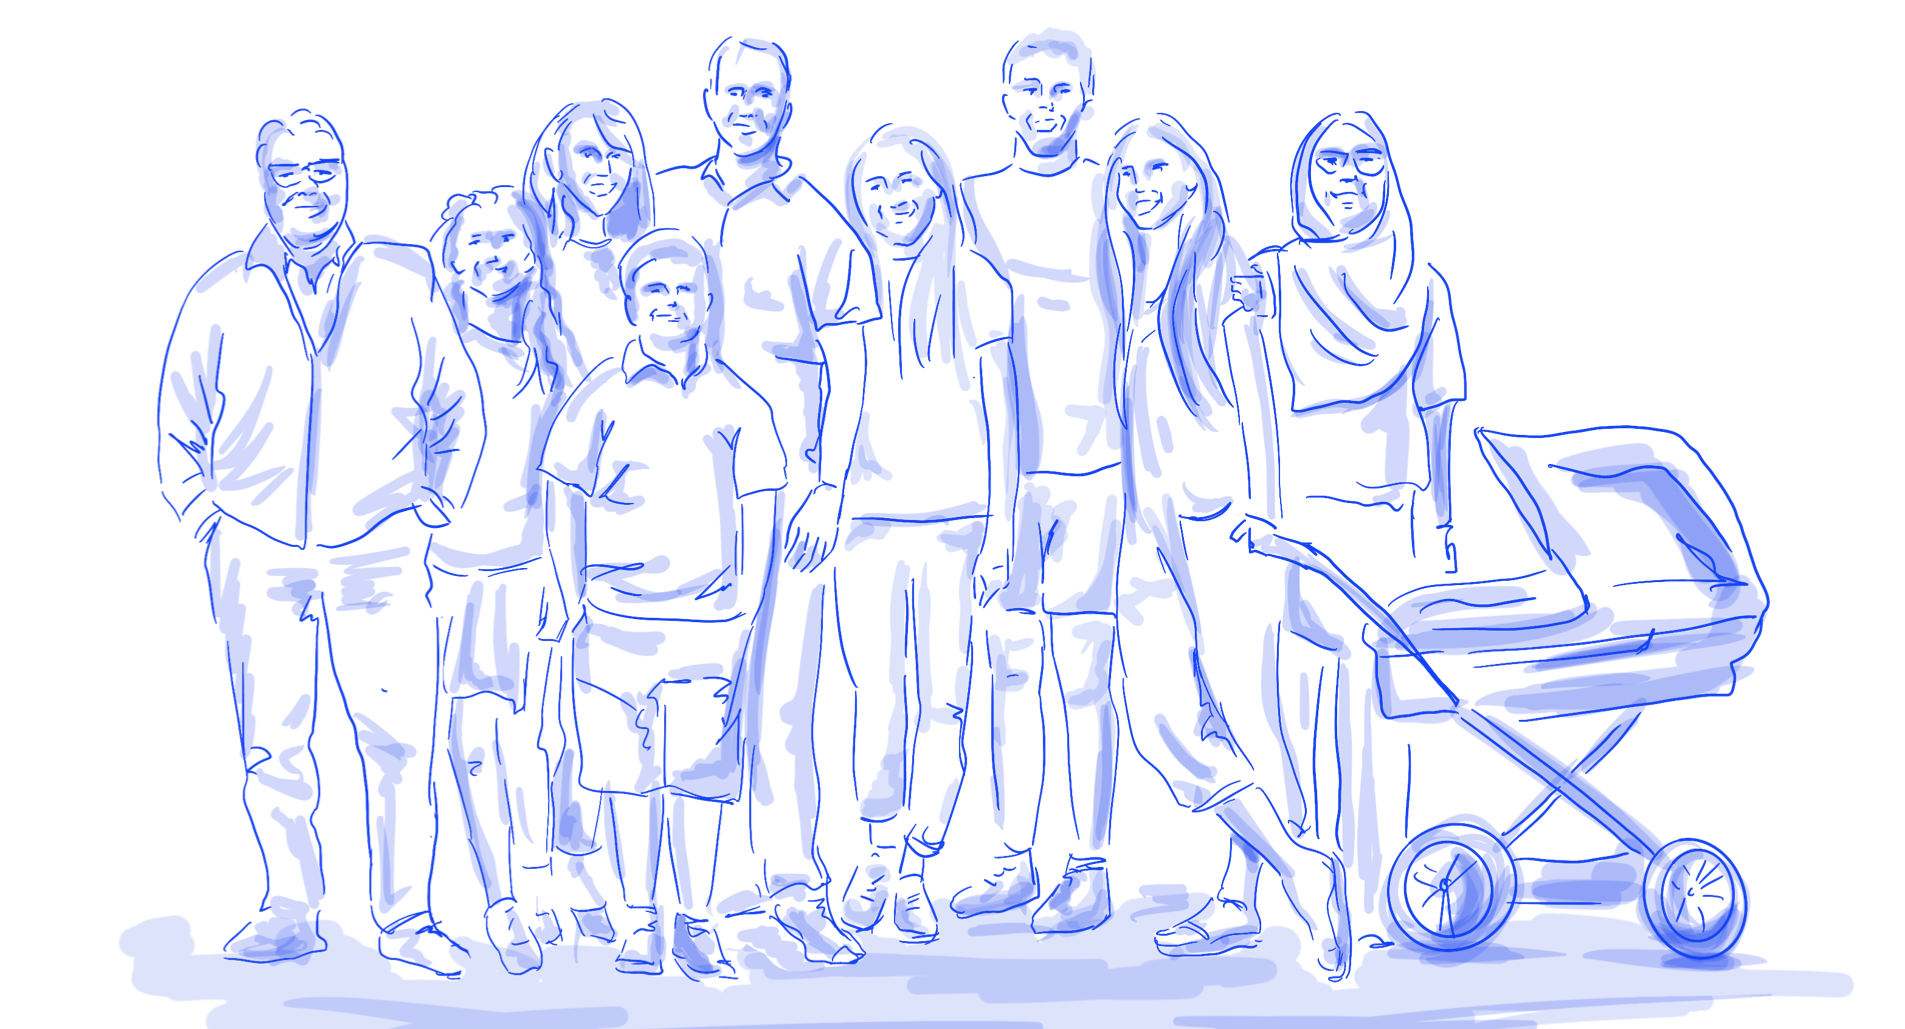 a drawing of a community with different people standing together